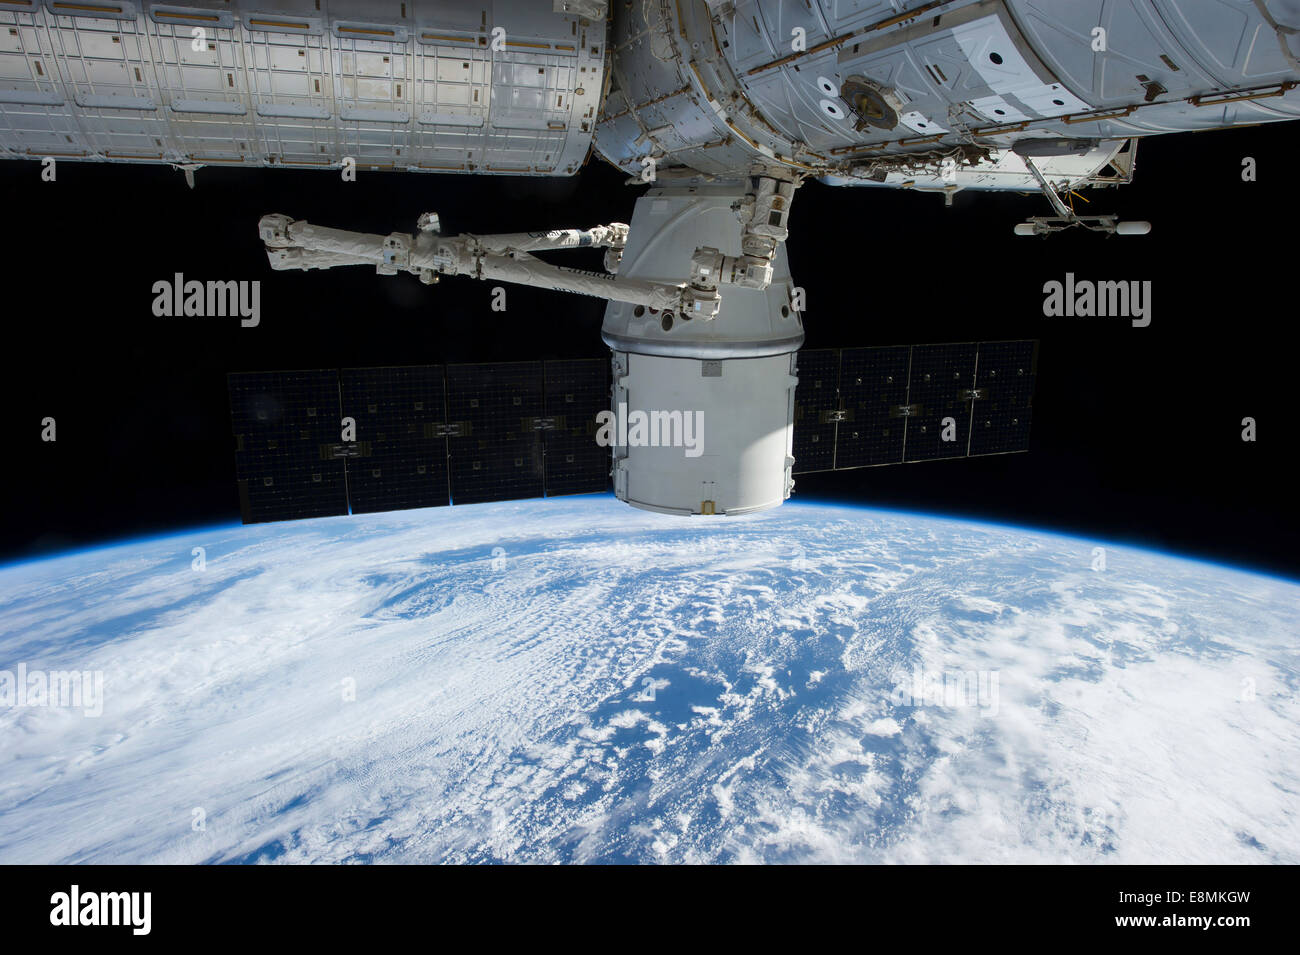 March 3, 2013 - View of the SpaceX Dragon during its approach and docking with the International Space Station. - Stock Image